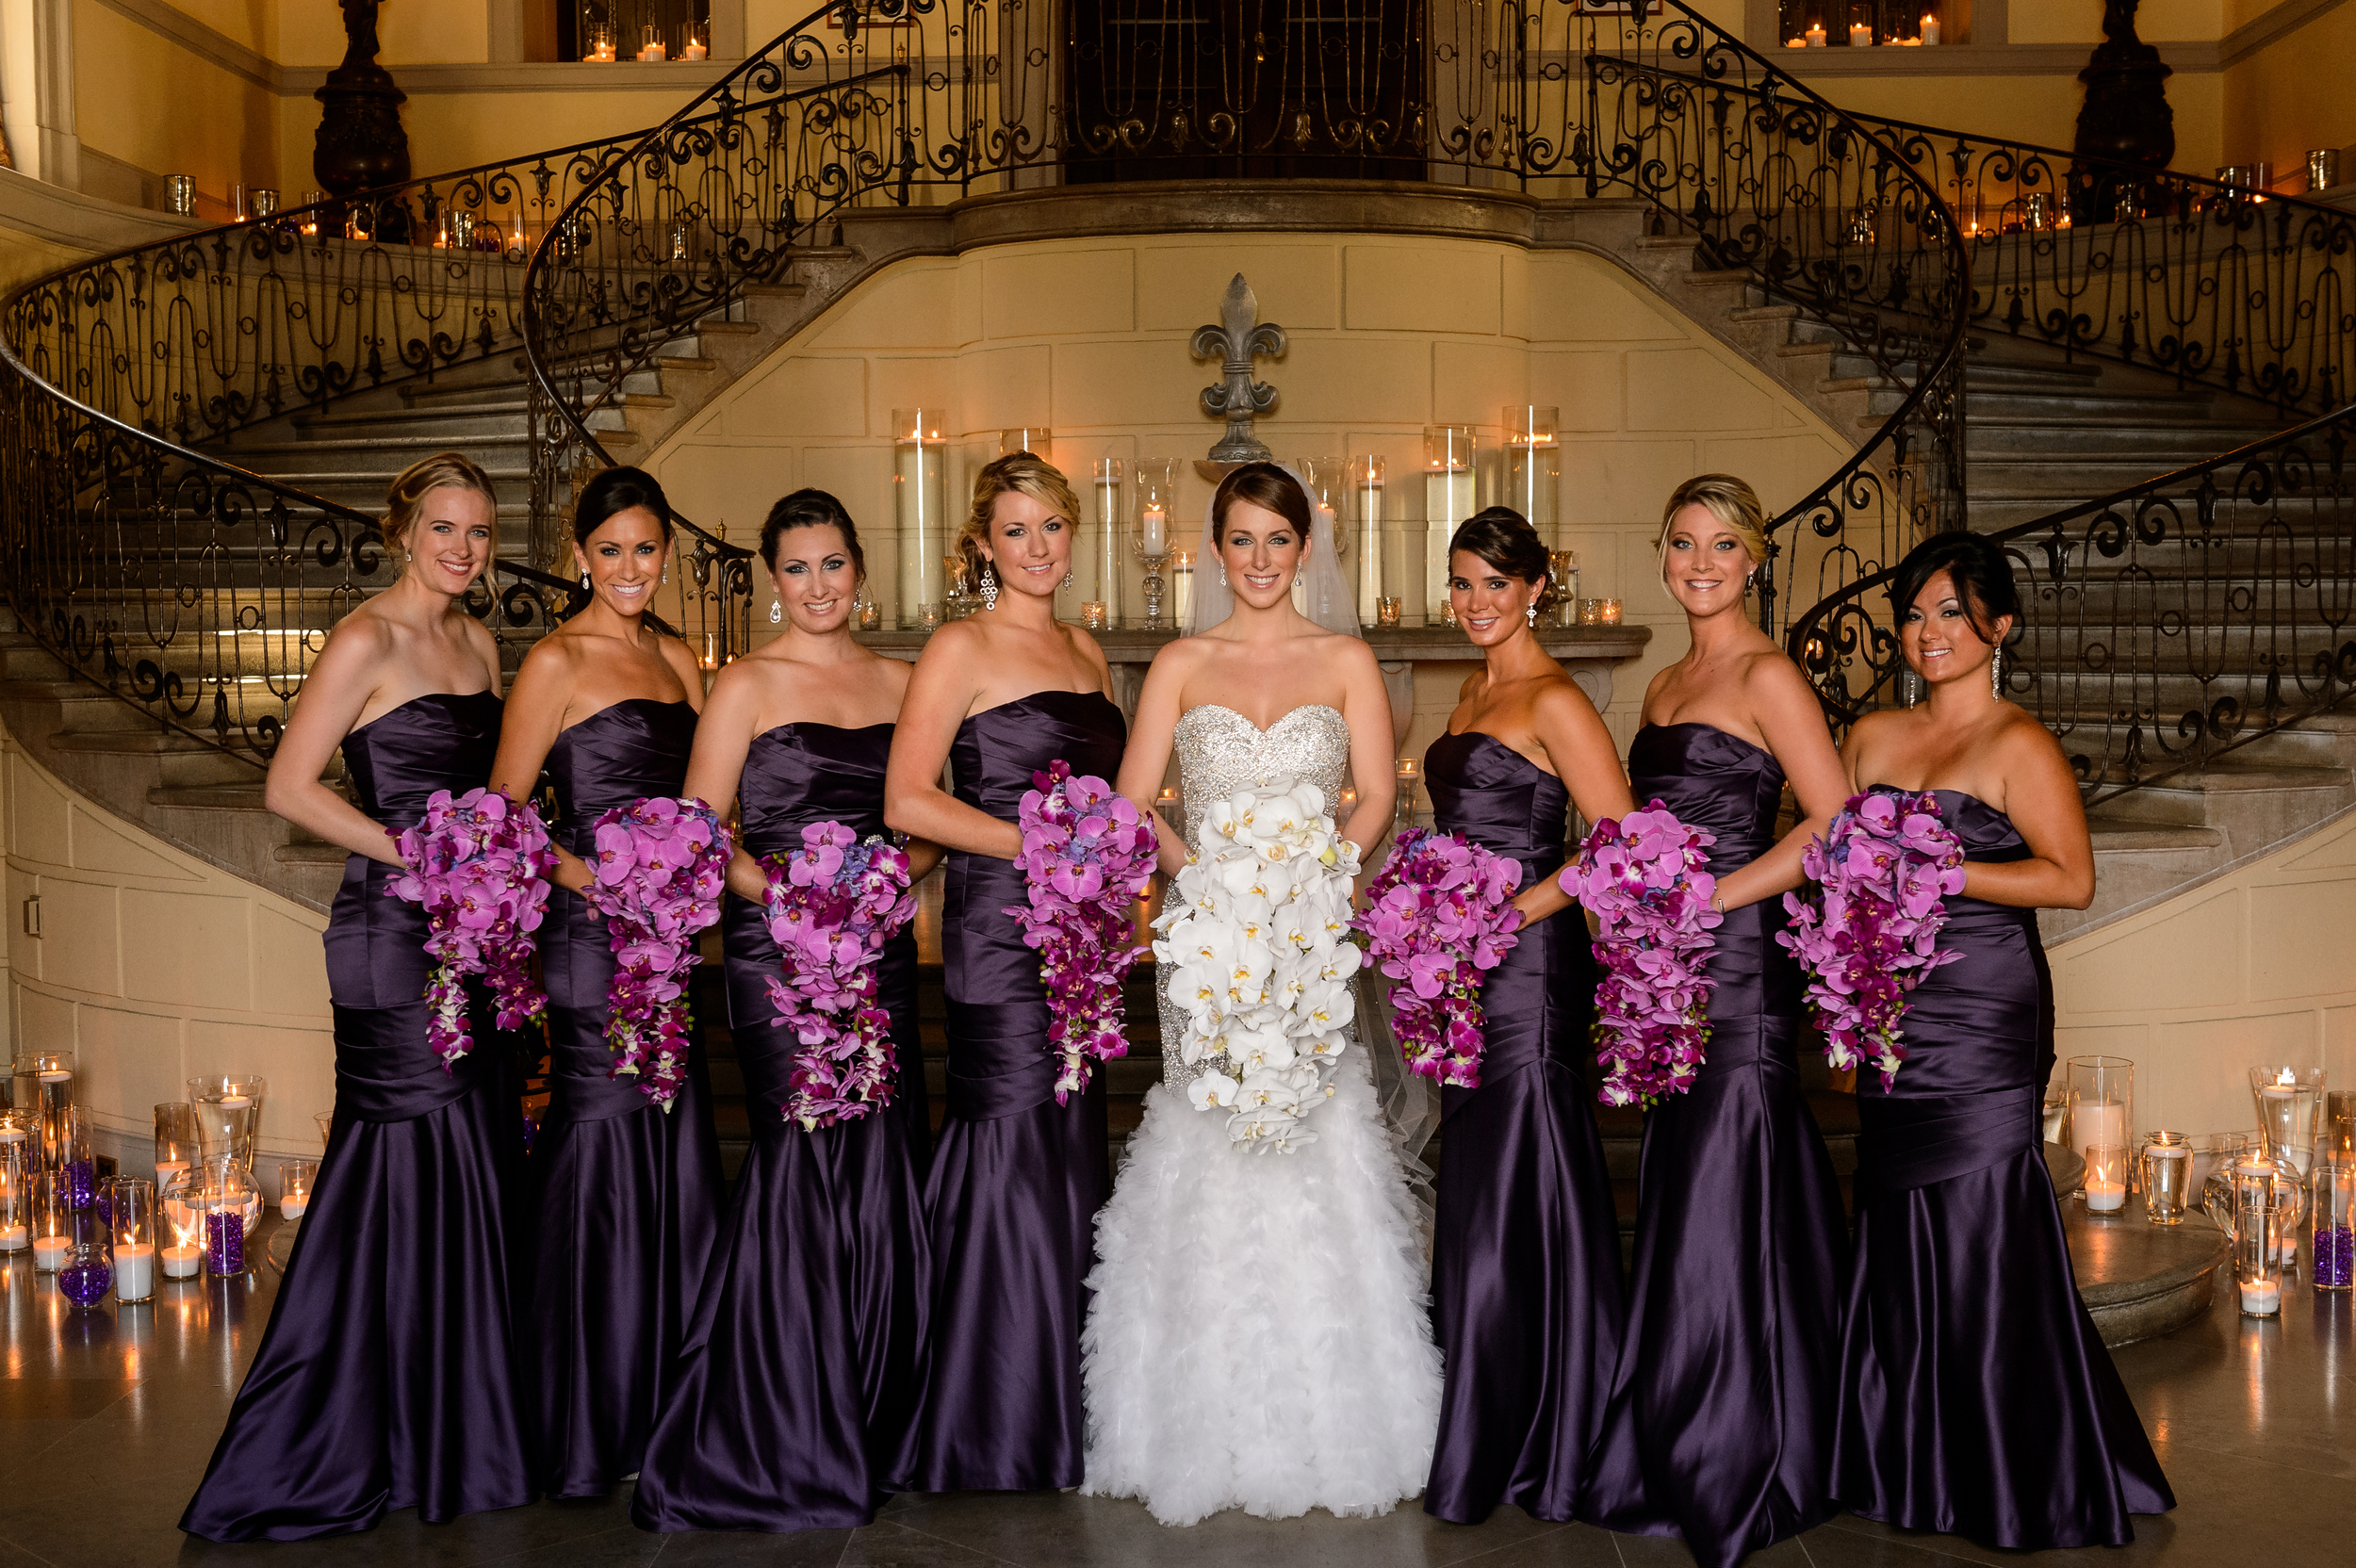 This wedding needed all the ladies to have AMAZING purple bouquets... long beautiful, trailing cascades of orchids act as jewels to their gowns.... with pops of bright color